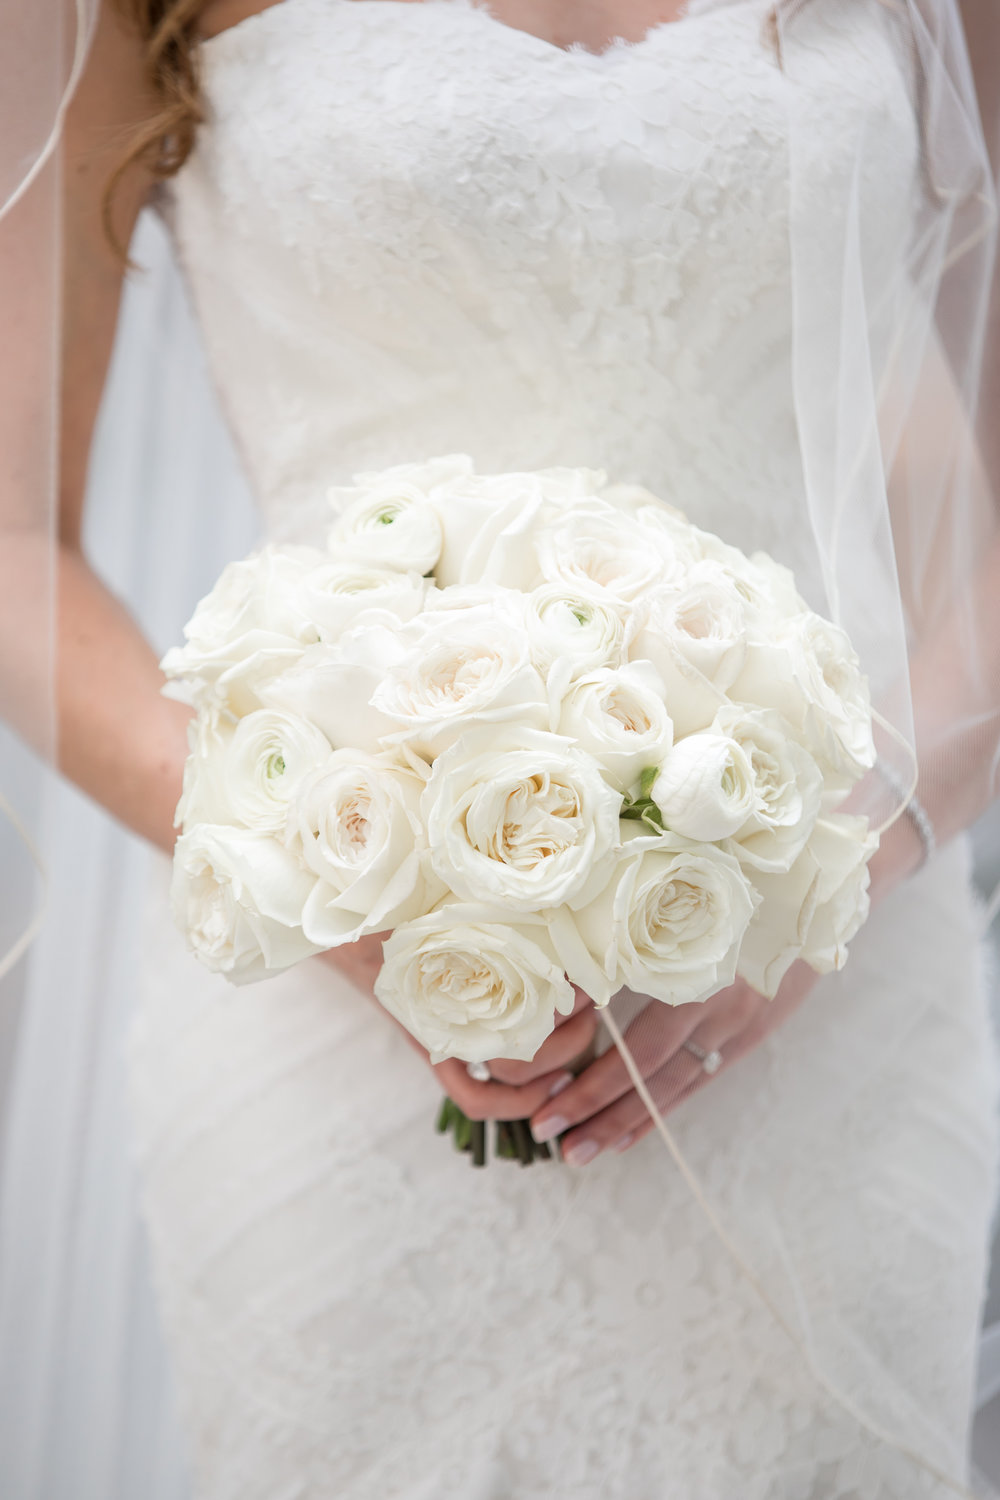 Wedding Flowers by Fleur Inc, Photo by Ann & Kam Photography, Planning by LK Events.  A classic rose bouquet.